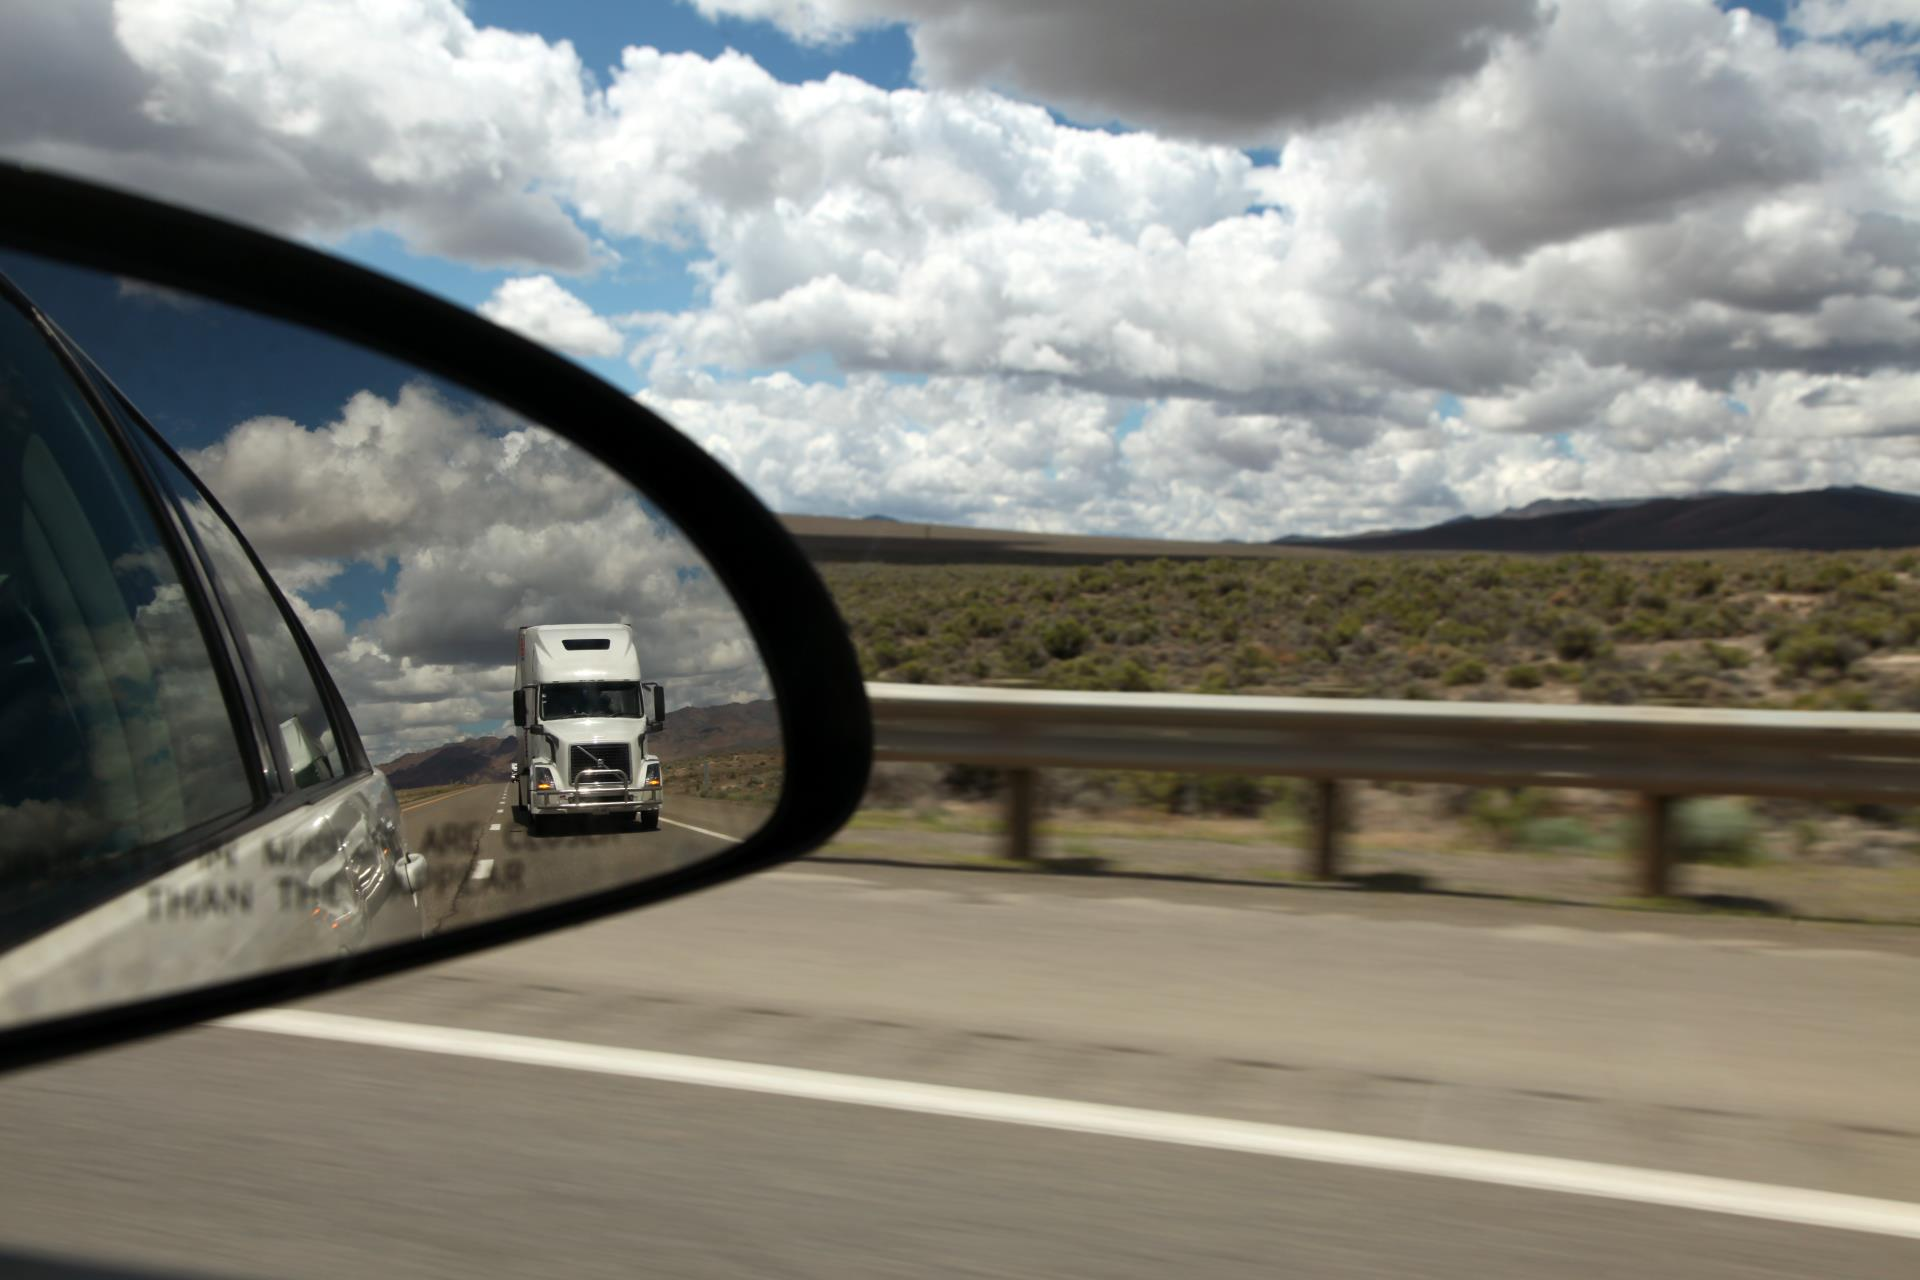 A freight truck as seen through the passenger-side mirror